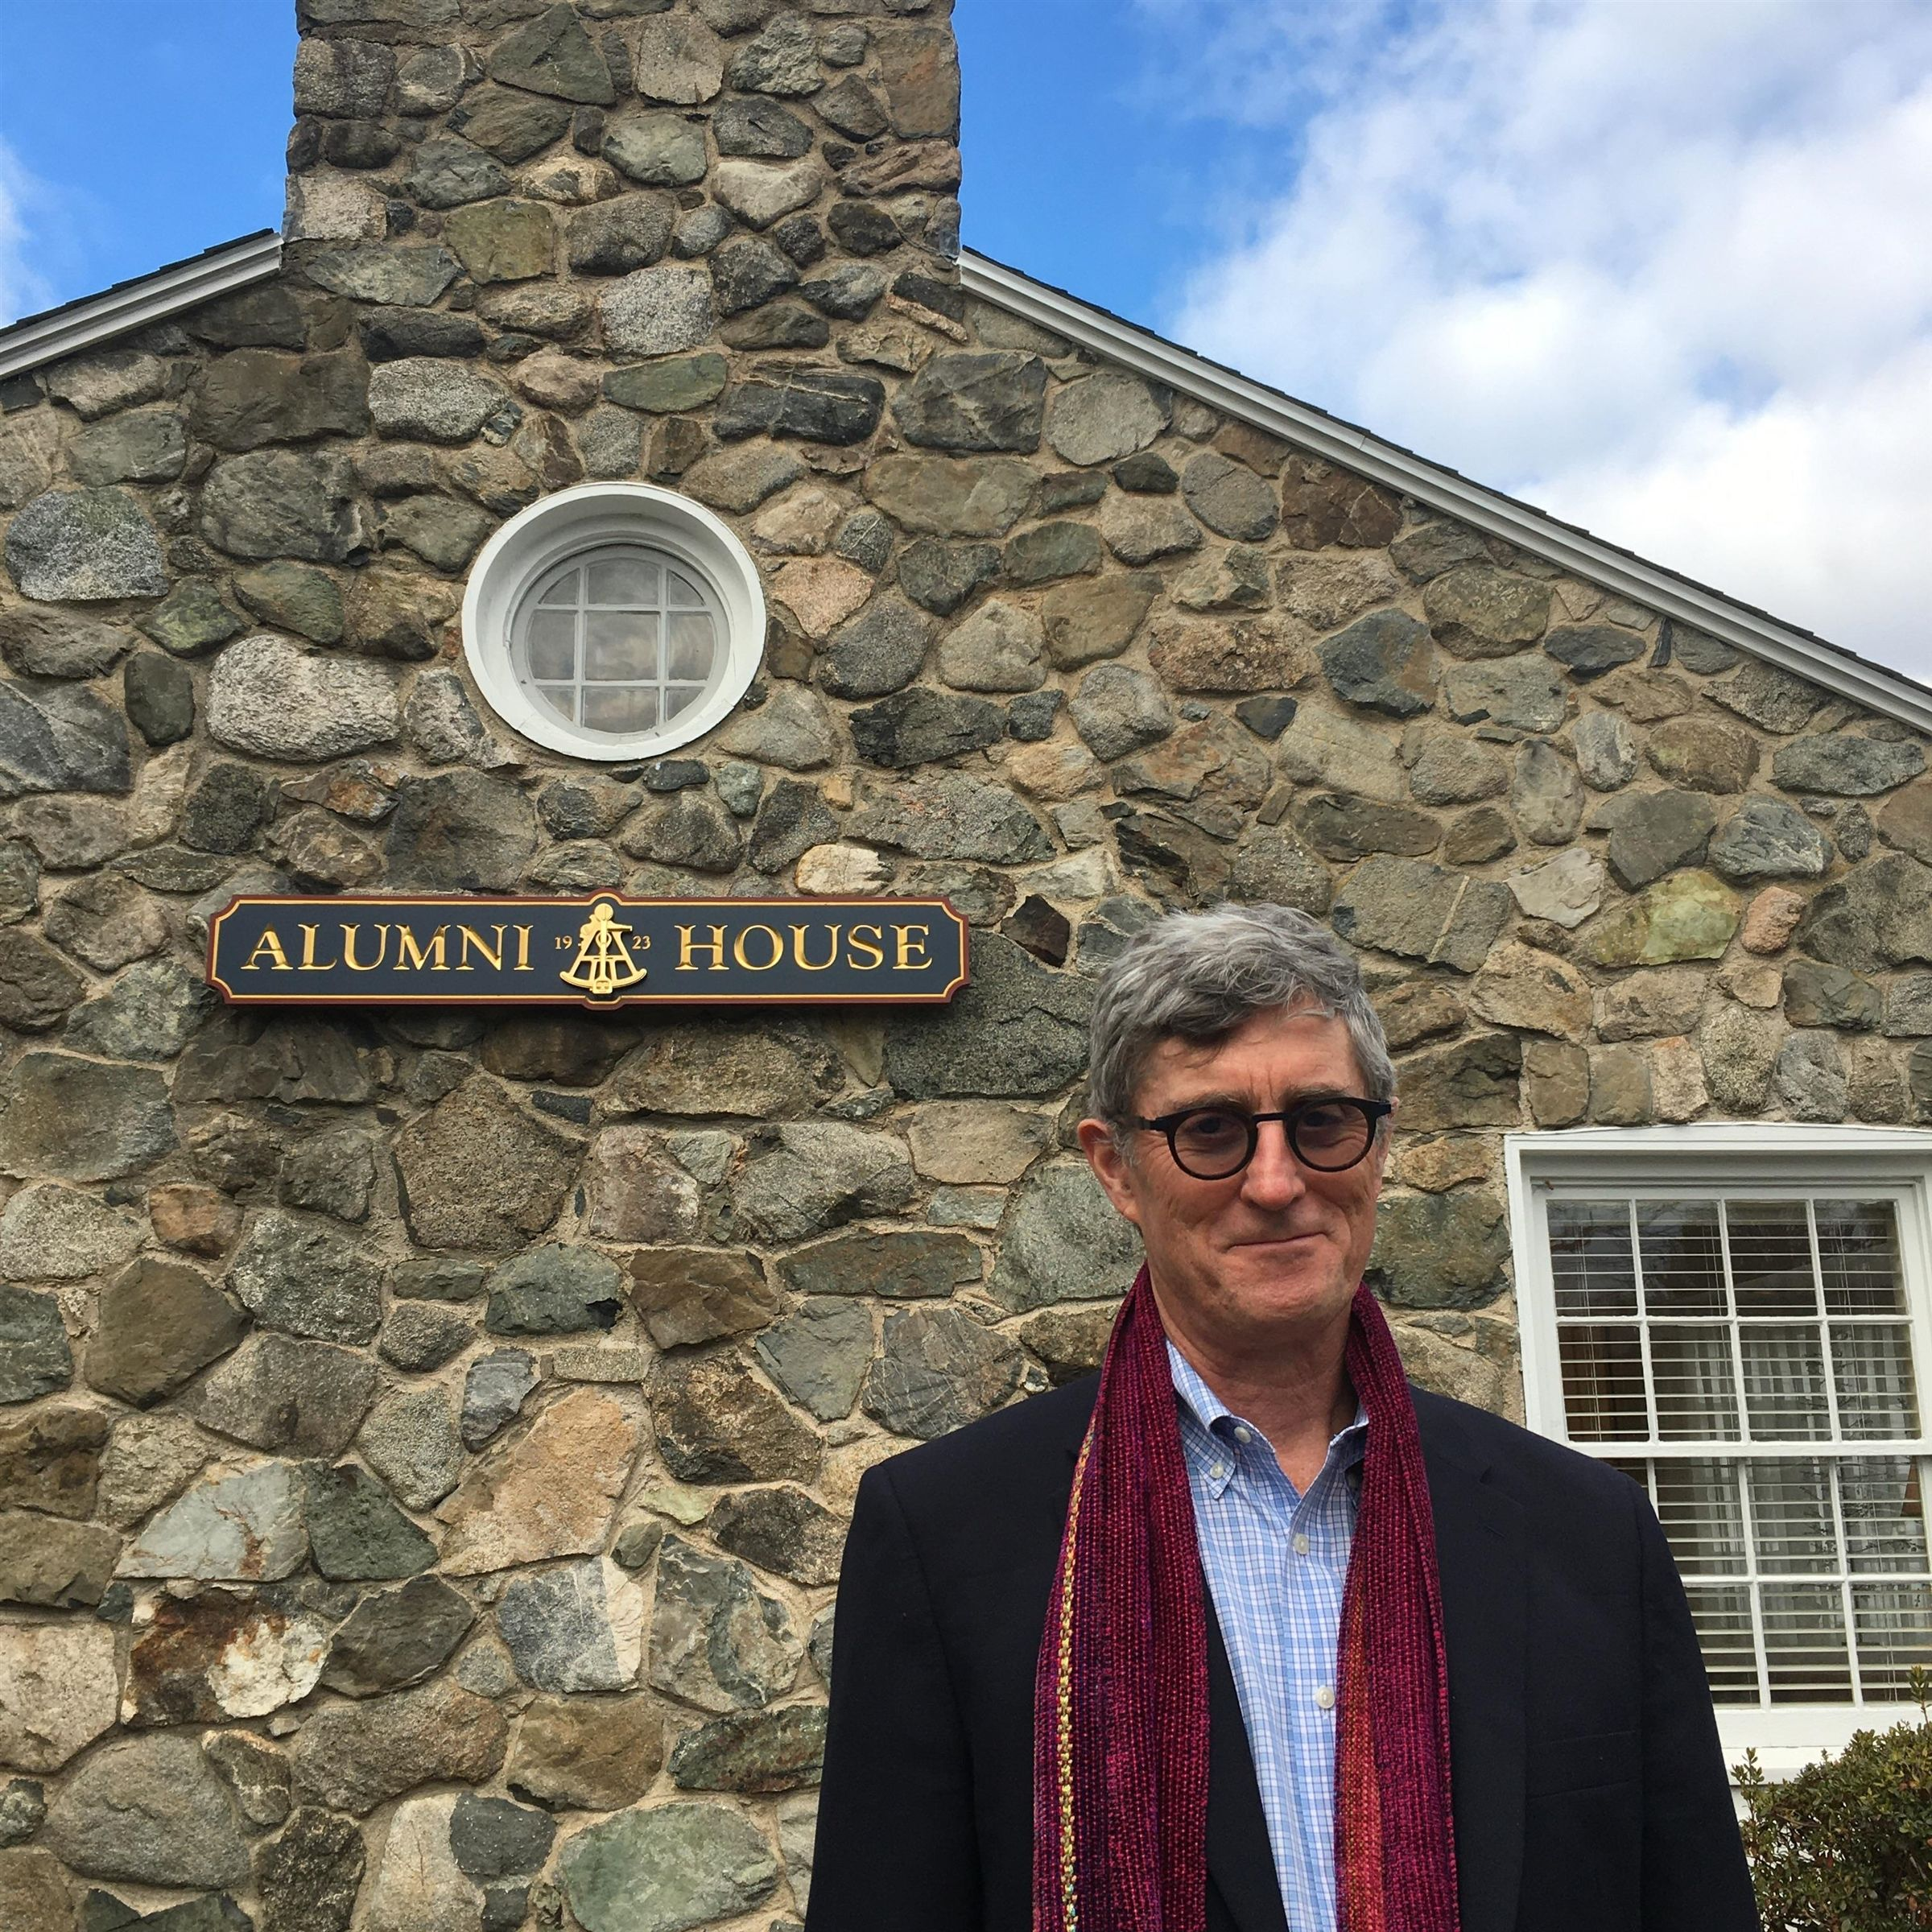 Len Edgerly '68 at Alumni House, January 2020